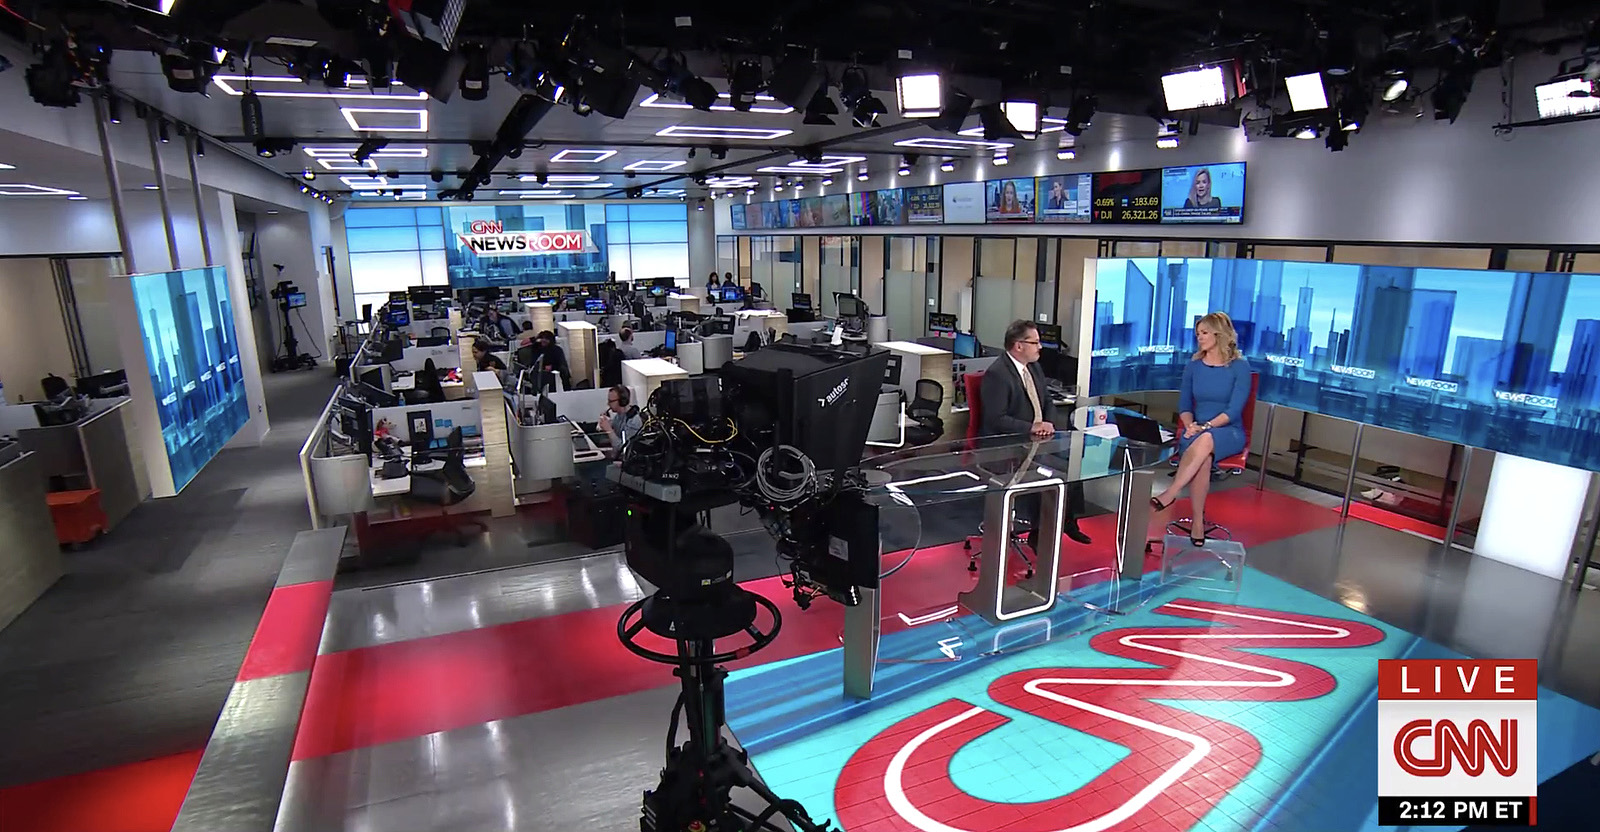 NCS_CNN-Studio-17n-2019_0041